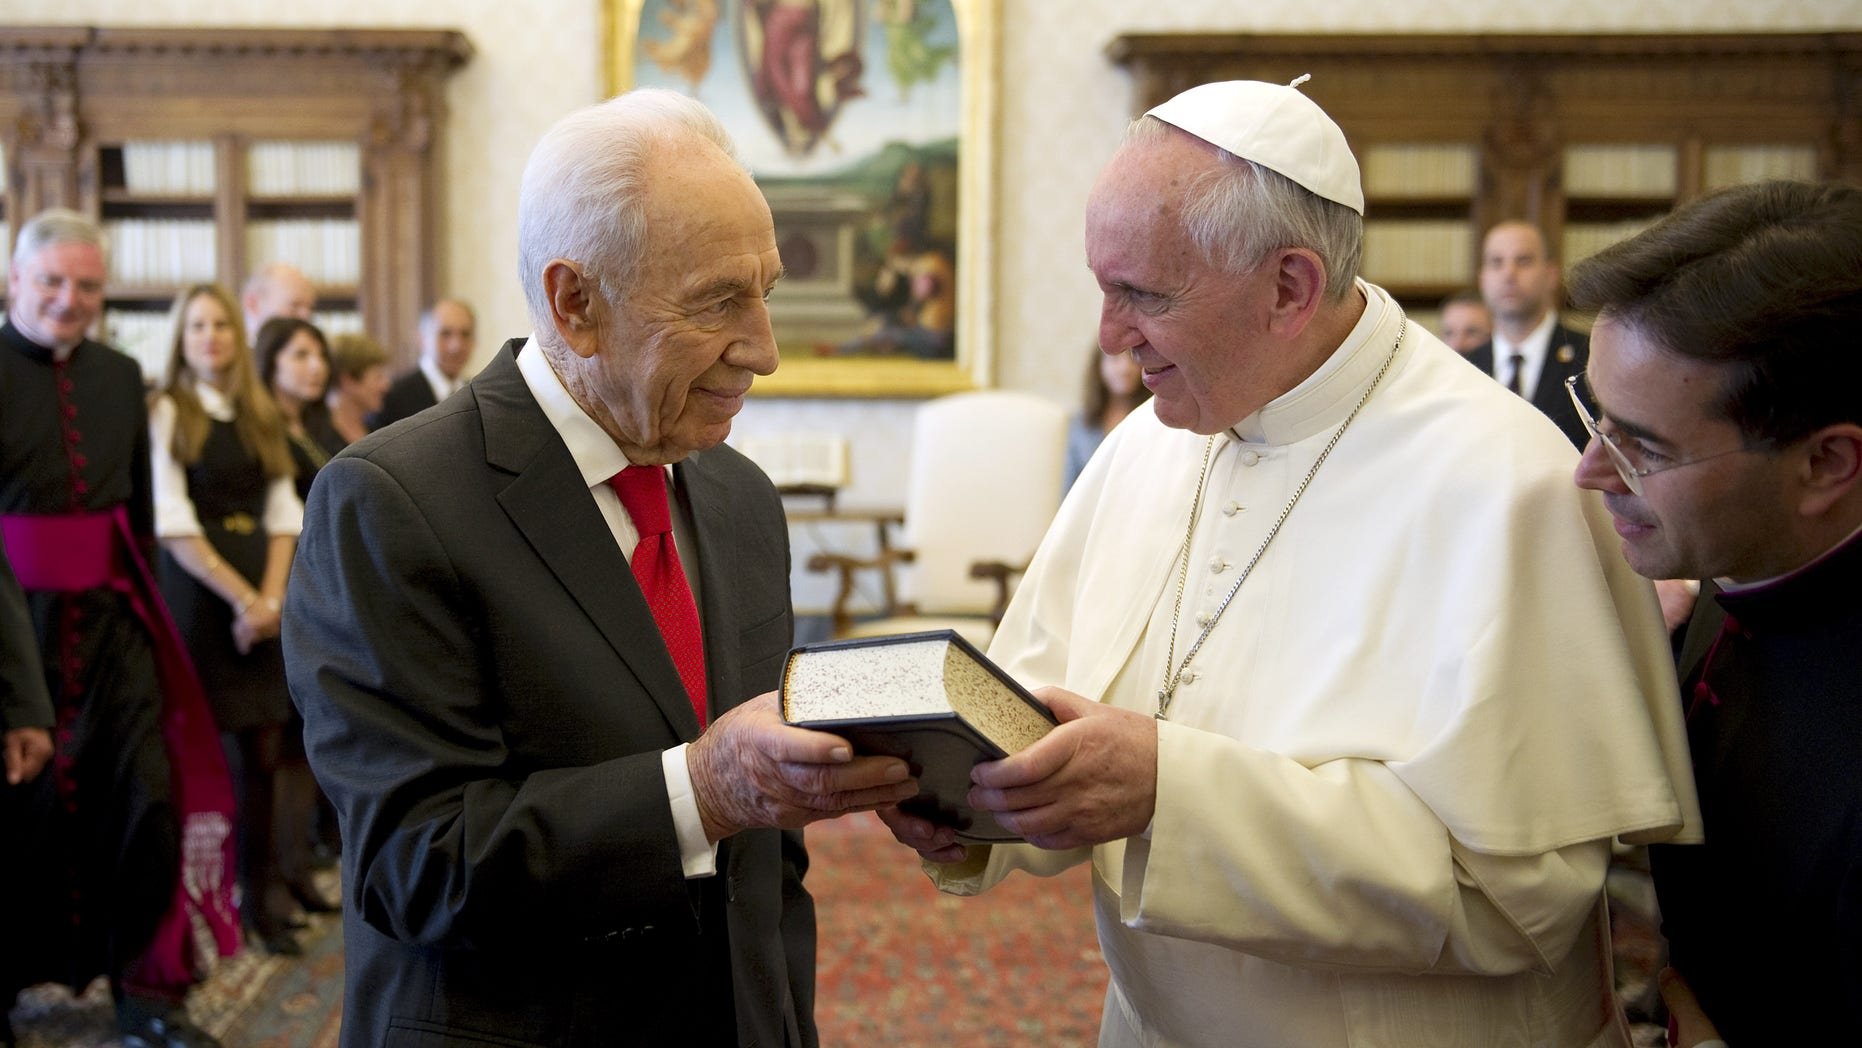 April 30, 2013: Pope Francis, right, exchanges gifts with Israeli President Shimon Peres on the occasion of their private audience, at the Vatican.